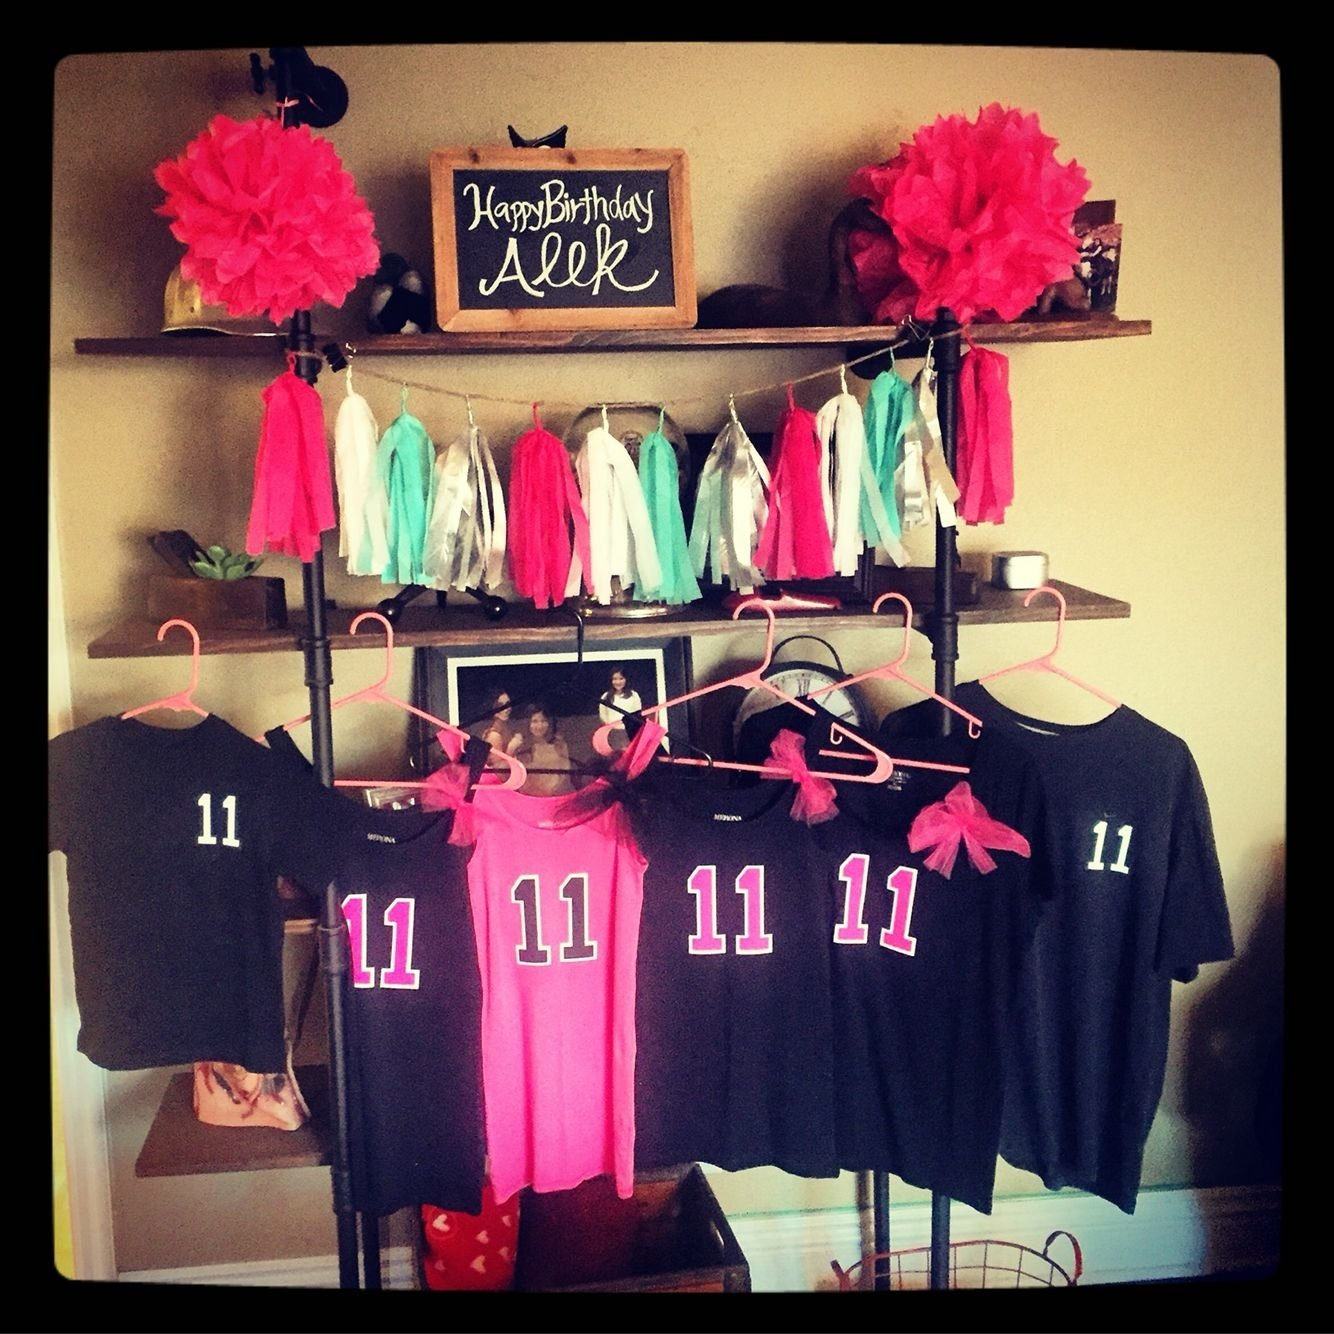 10 Awesome Slumber Party Ideas For 11 Year Olds birthday themed t shirts and tank tops for an 11 year old girls 1 2020